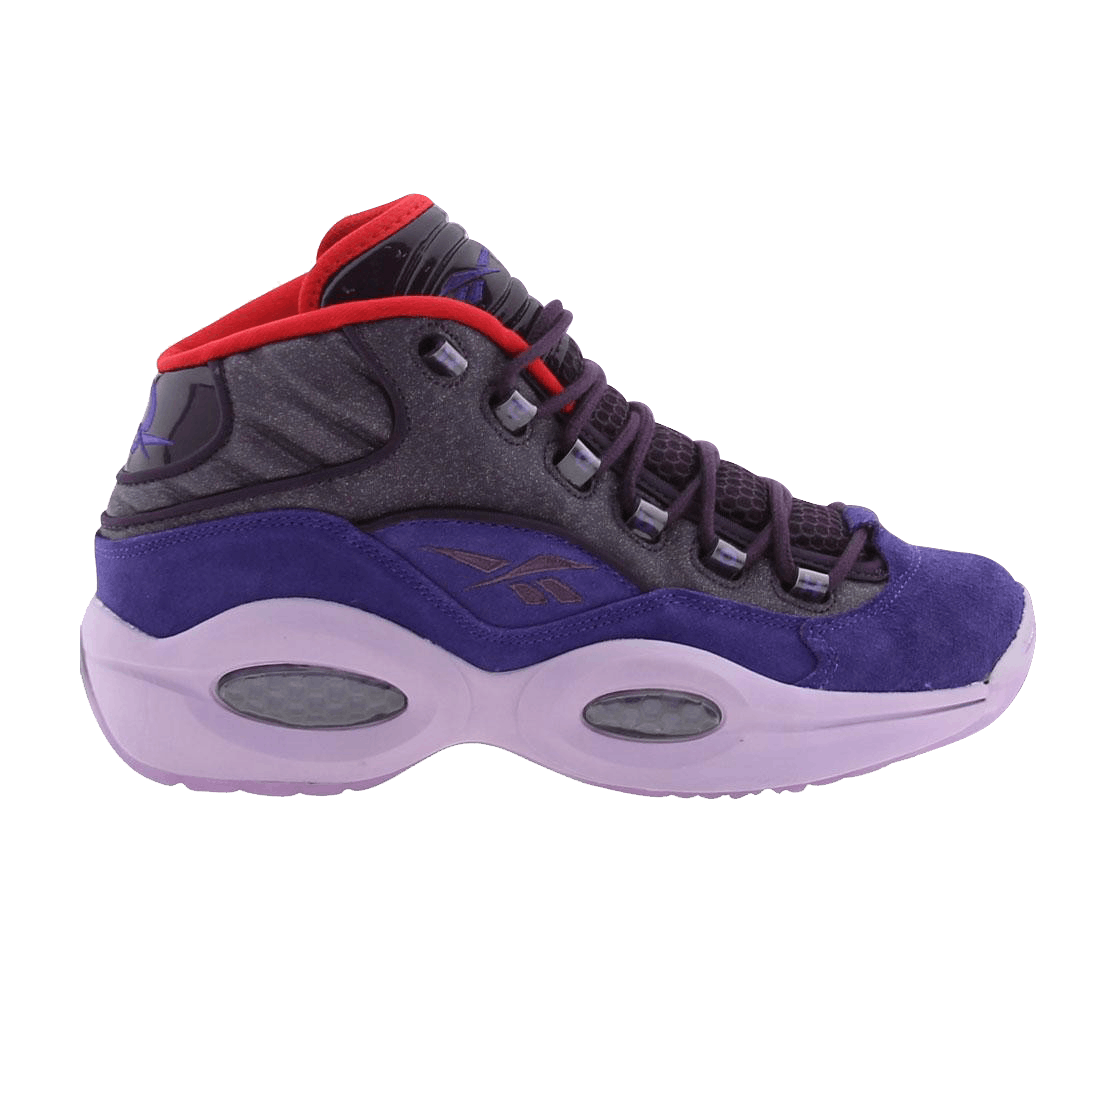 9501499cbad414 Question Mid  Ghost Of Christmas Future  - Reebok - V61429